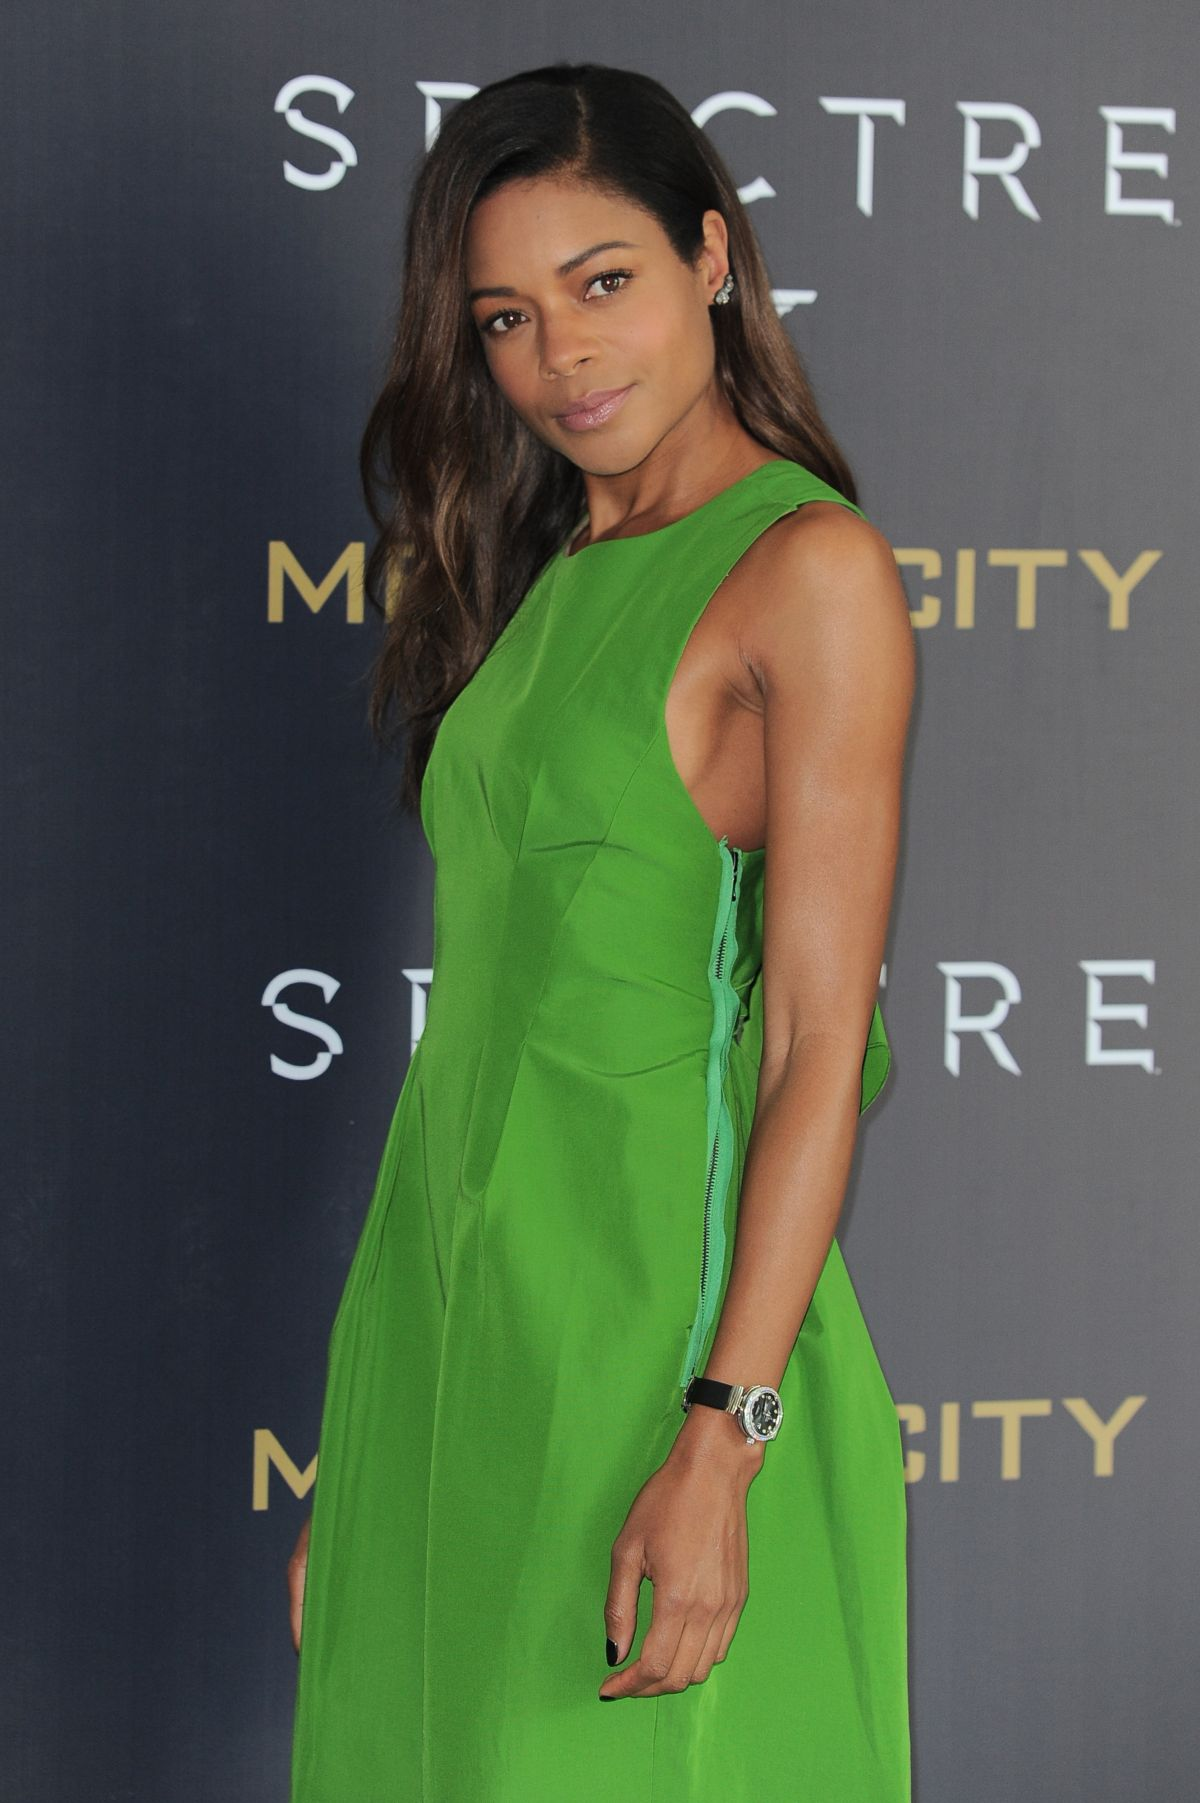 NAOMIE HARRIS at Spectre Photocall in Mexico City 11/01/2015